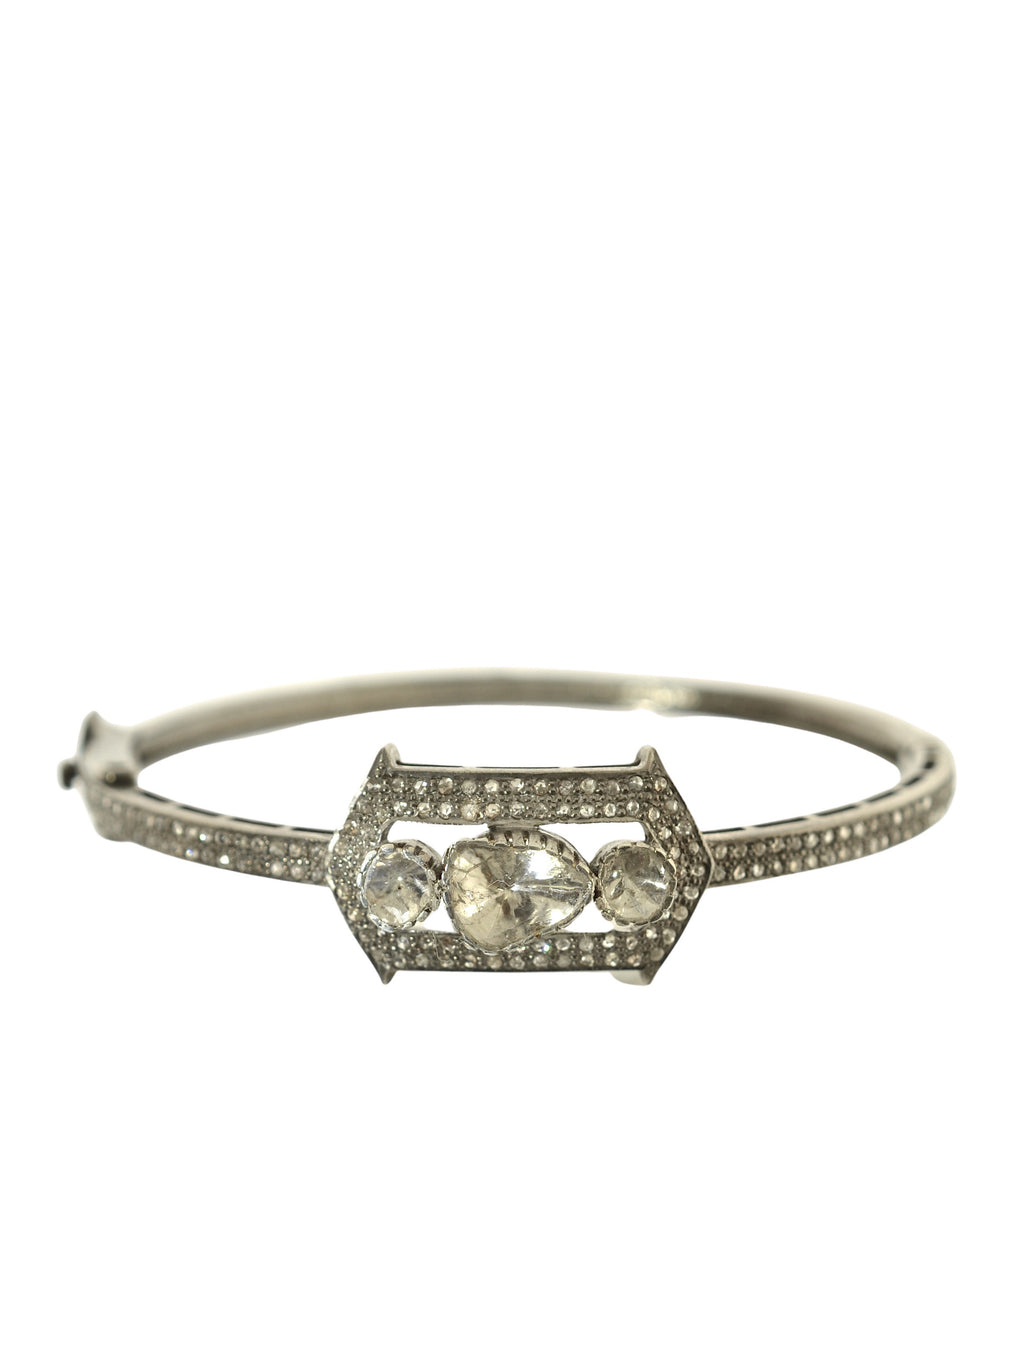 Pave and Rosecut Diamond Vintage Inspired Bangle